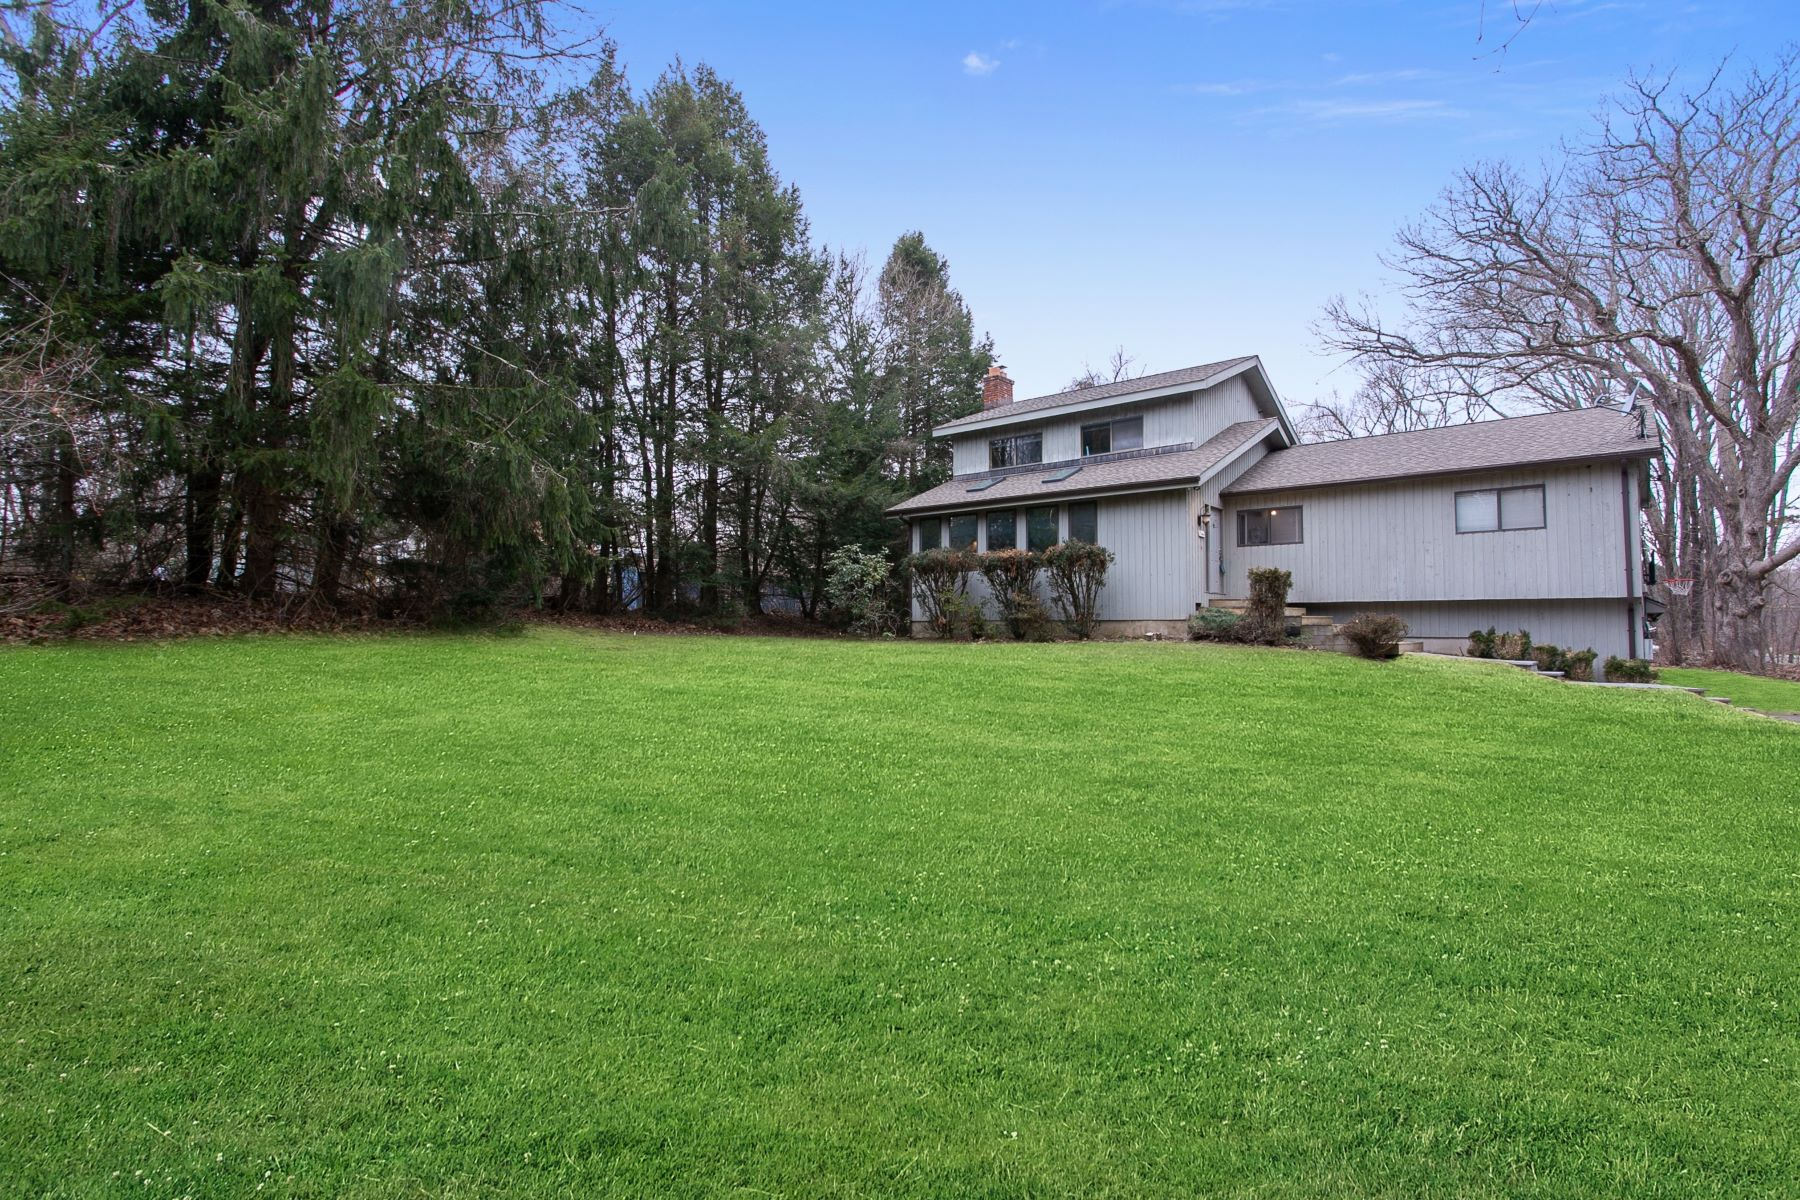 Single Family Homes for Active at Wonderful Home With Level Property 138 Curt Smith Rd Southbury, Connecticut 06488 United States